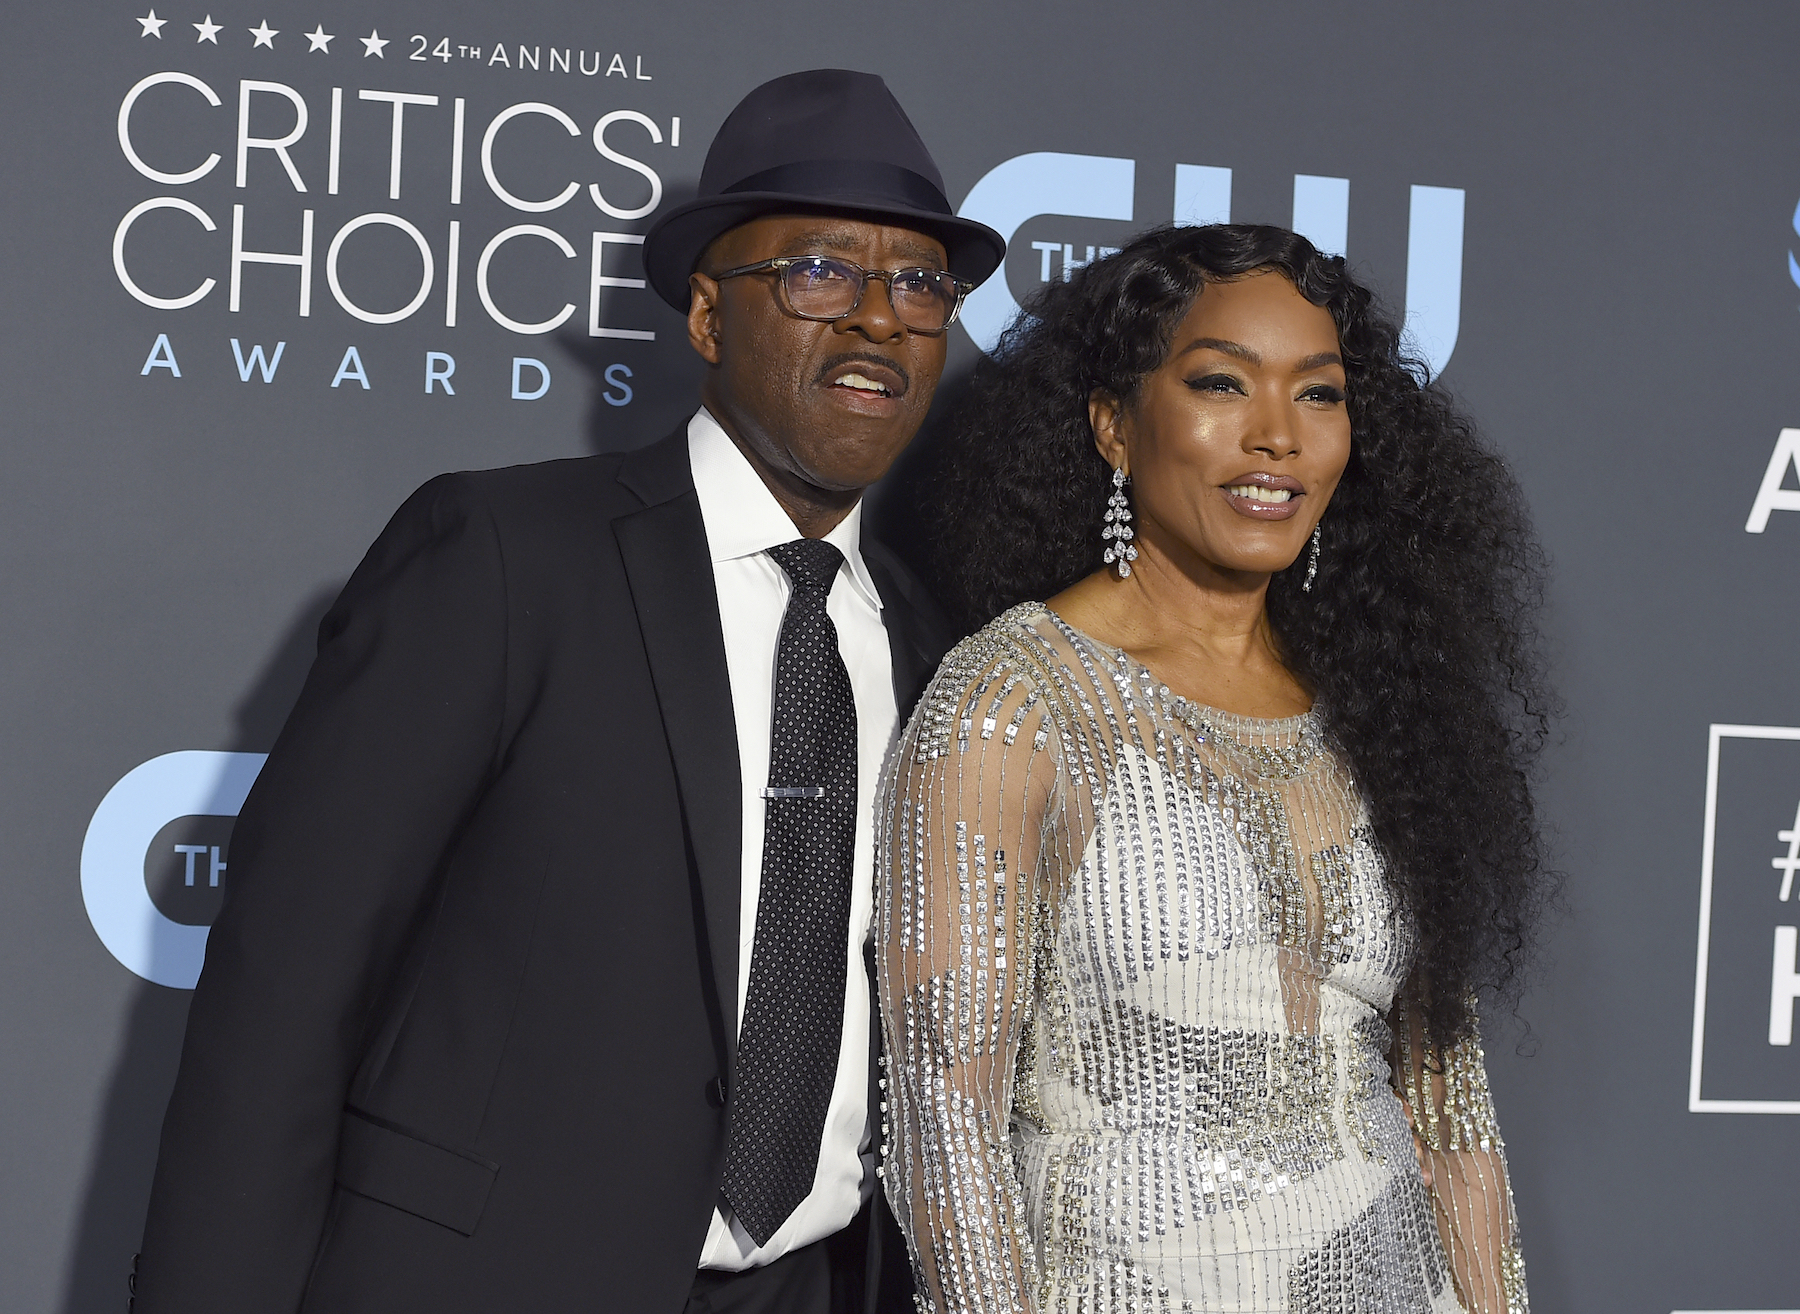 "<div class=""meta image-caption""><div class=""origin-logo origin-image ap""><span>AP</span></div><span class=""caption-text"">Courtney B. Vance, left, and Angela Bassett arrive at the 24th annual Critics' Choice Awards on Sunday, Jan. 13, 2019, at the Barker Hangar in Santa Monica, Calif. (Jordan Strauss/Invision/AP)</span></div>"